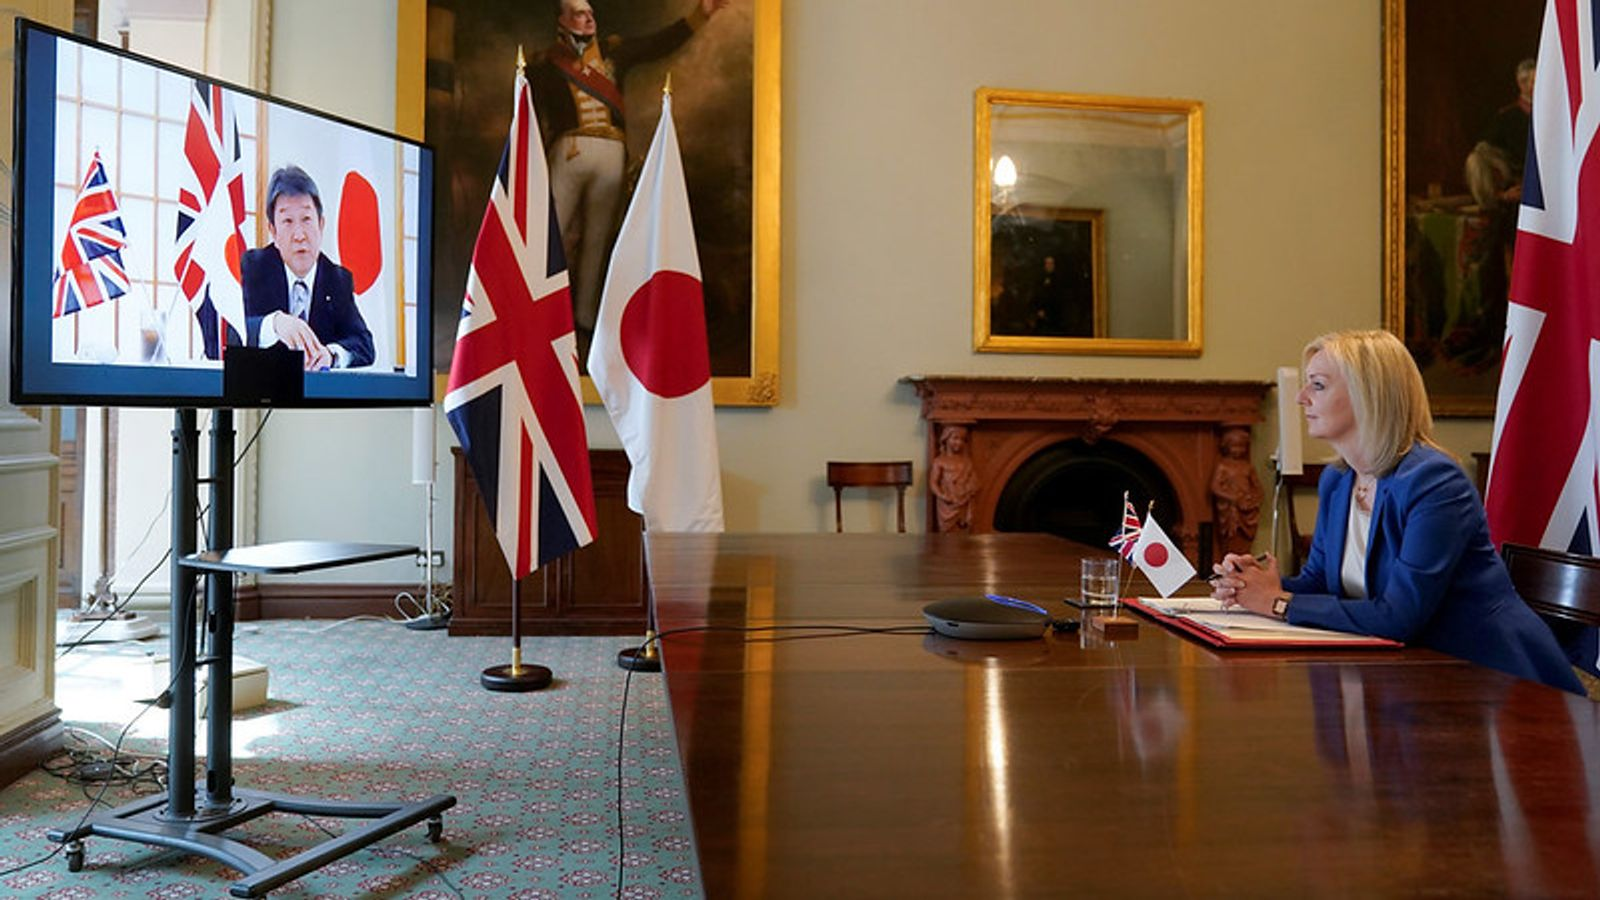 Brexit: The United Kingdom and Japan sign a free trade agreement worth 15.2 billion pounds in Tokyo |  Politics News